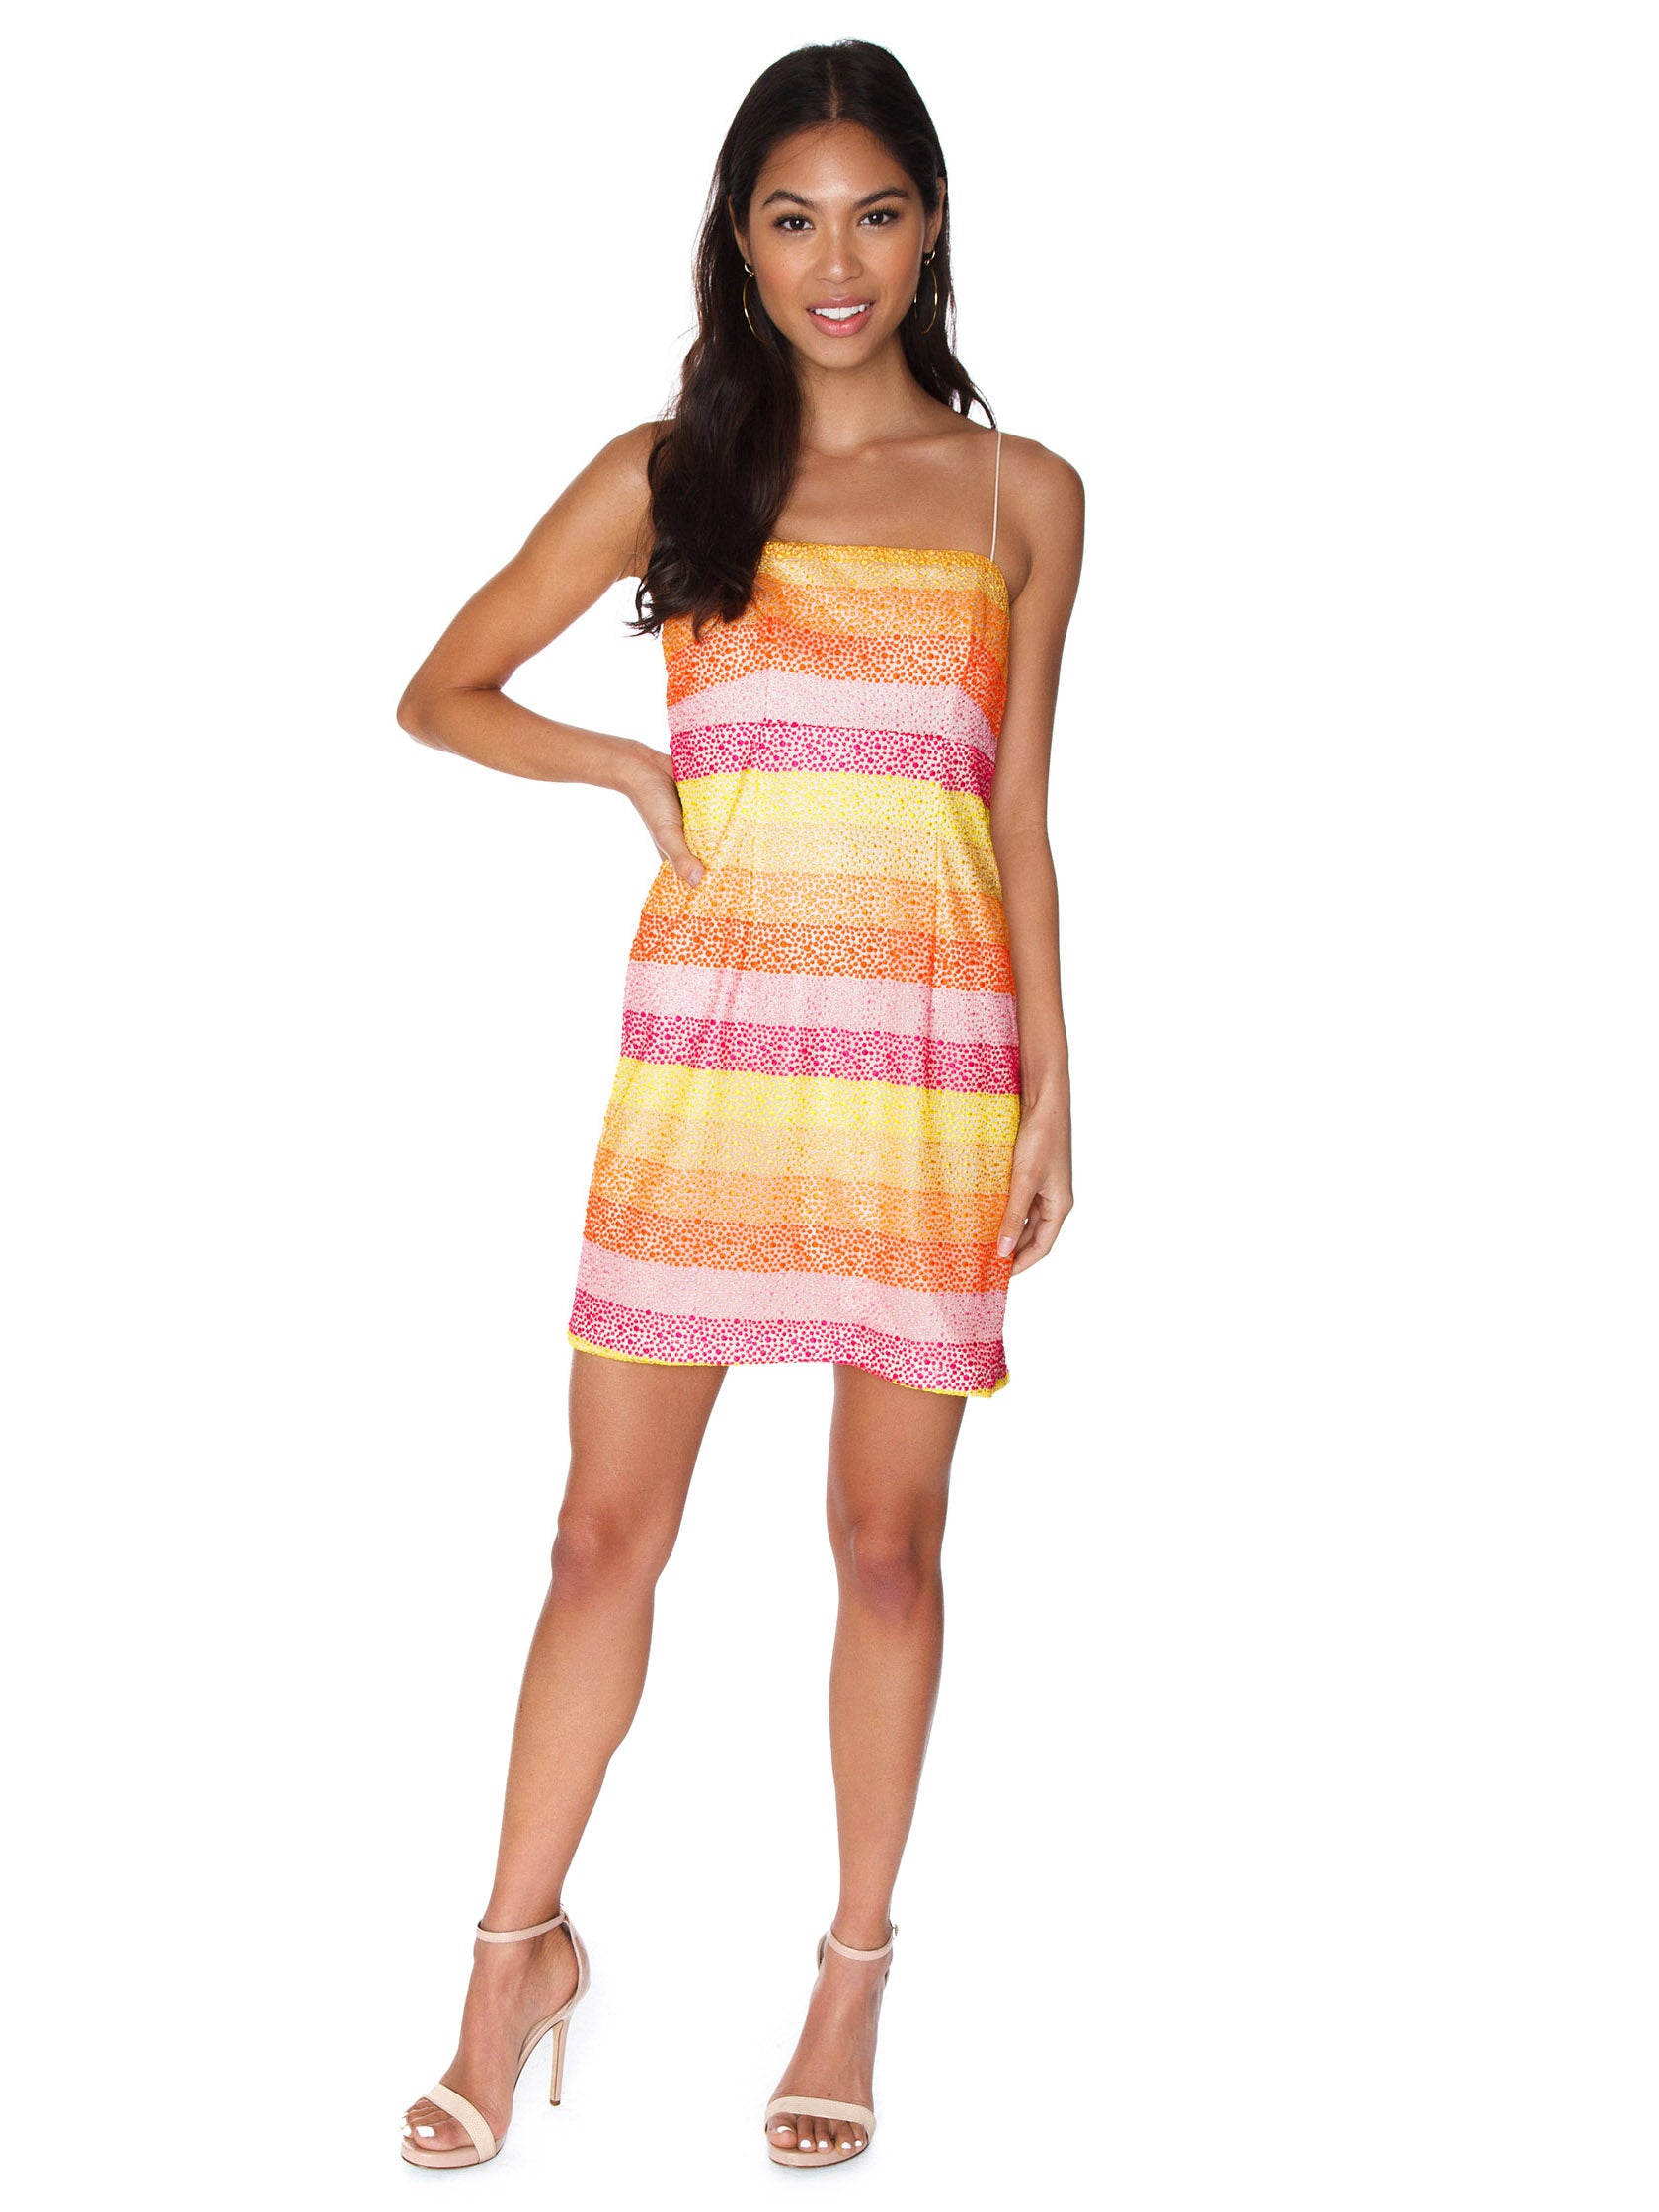 Girl outfit in a dress rental from Show Me Your Mumu called Clarissa Dress